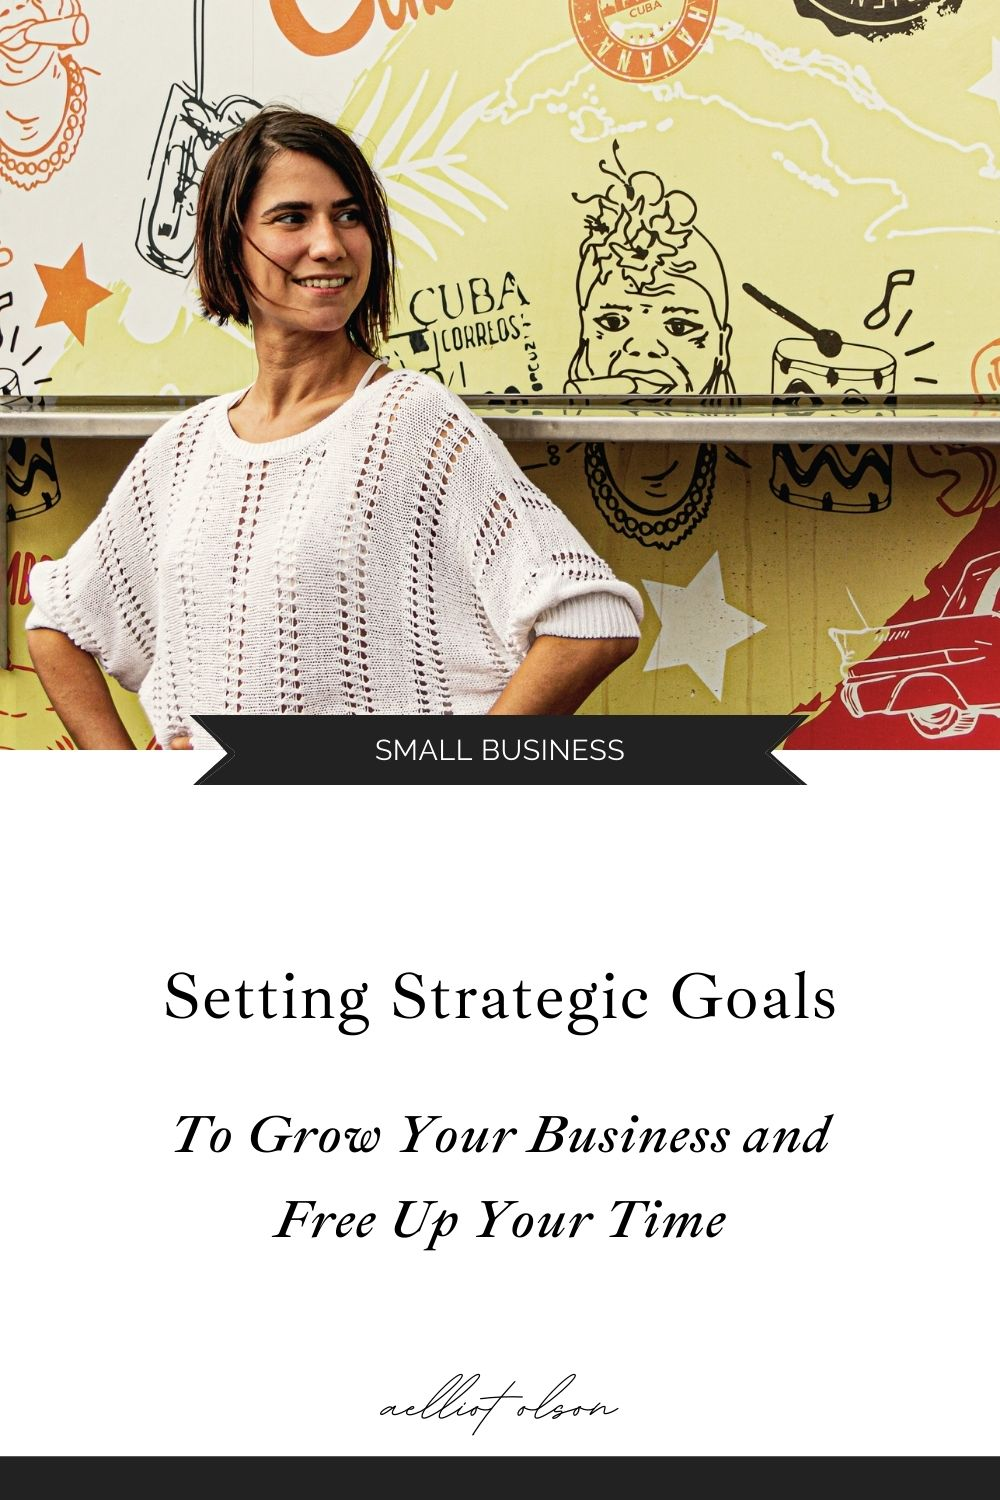 How to set strategic goals to grow your business and free up your time.